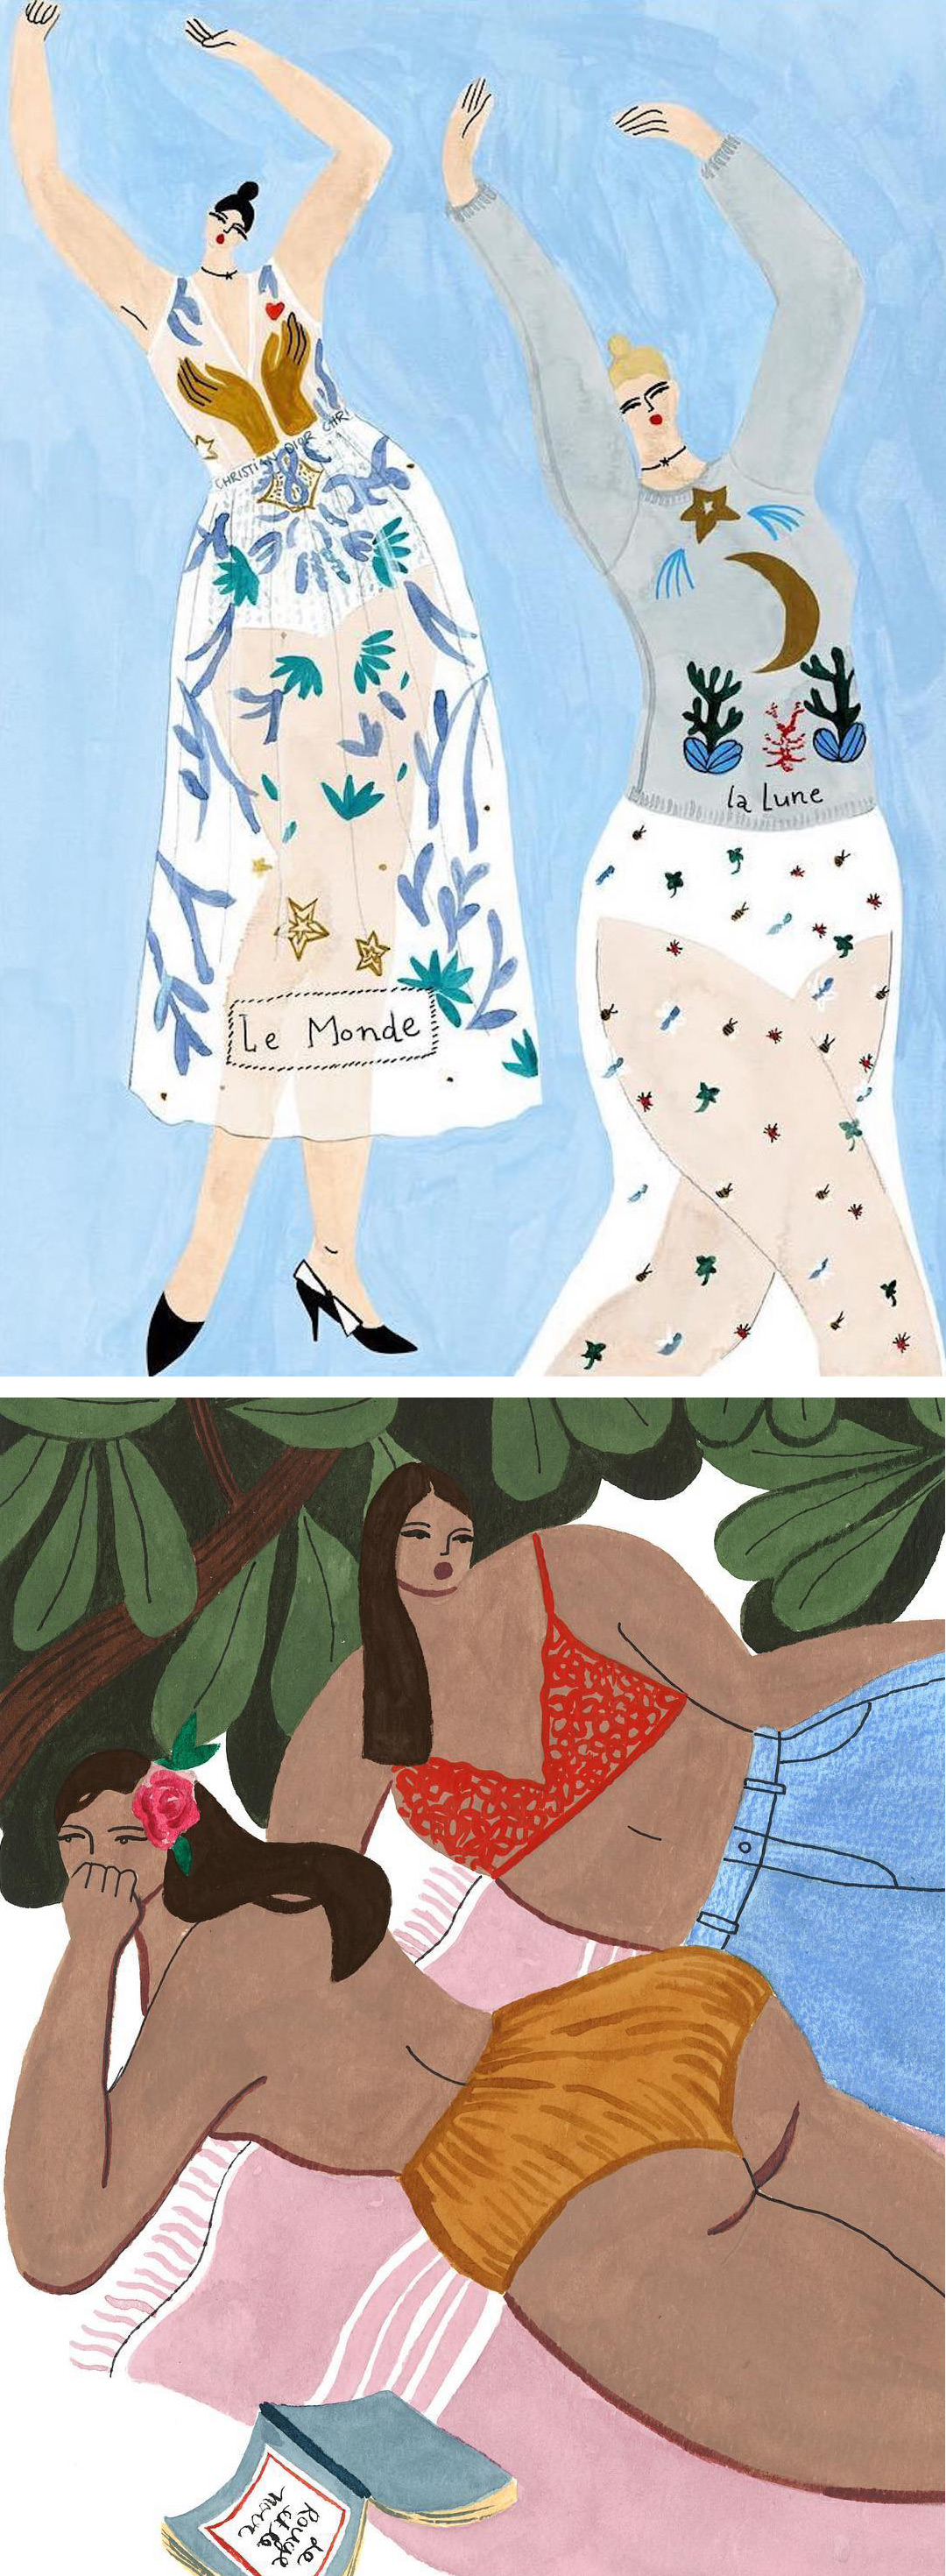 Isabelle Feliu fashion illustrations